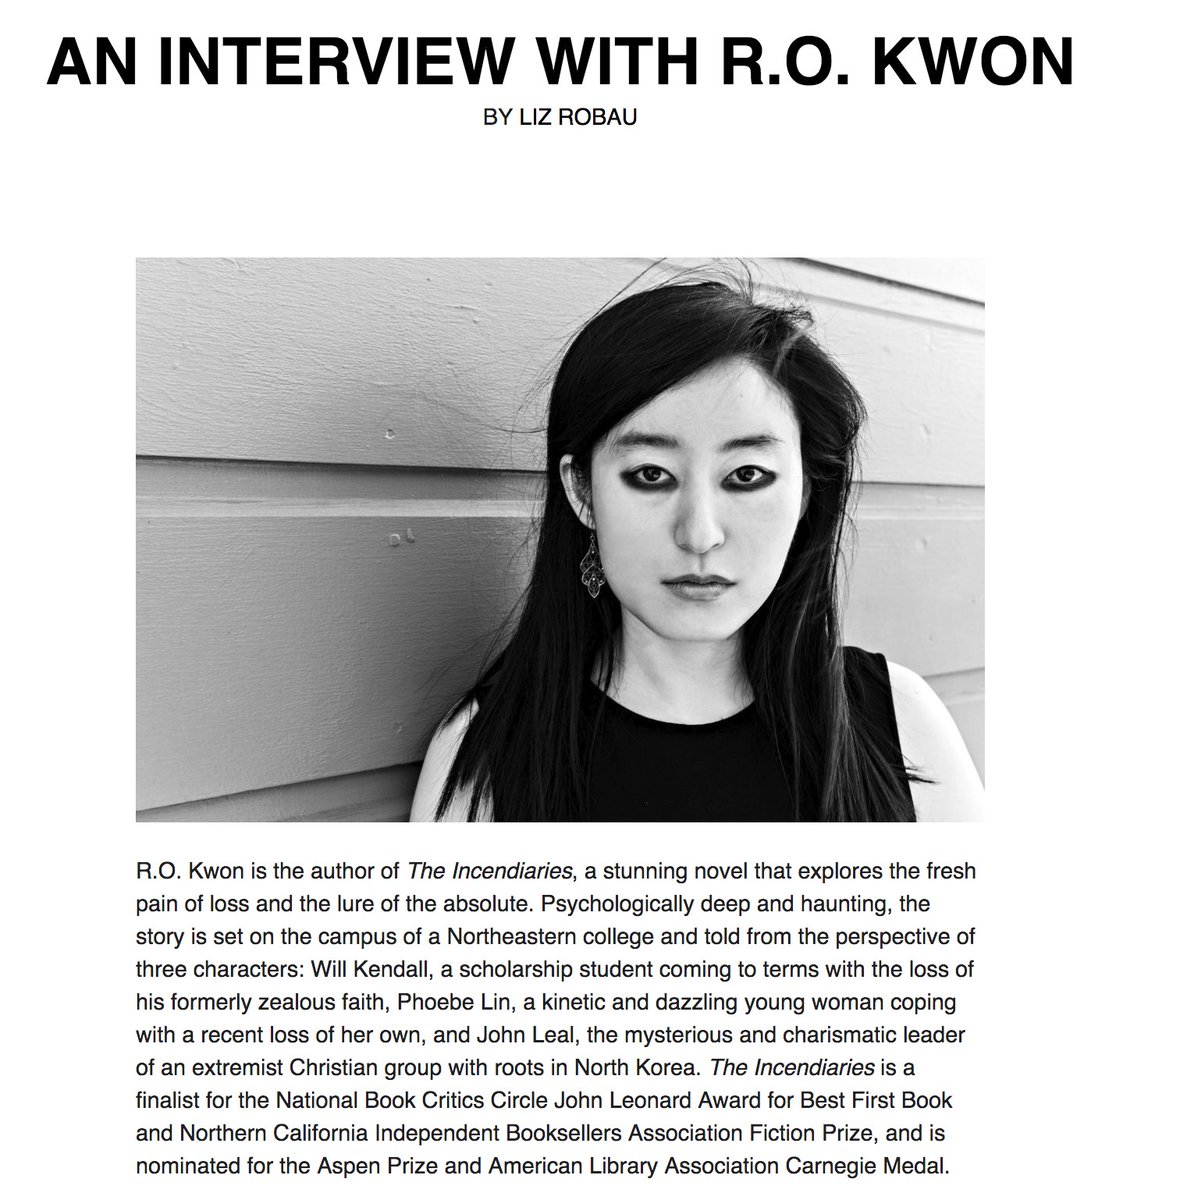 On our website today: Liz Robau's (@lizrobau) interview with R.O. Kwon (@rokwon), whose beautiful debut novel, The Incendiaries, has been named a finalist for the 2018 John Leonard Prize. Linked below!  http://www.bkreview.org/uncategorized/an-interview-with-r-o-kwon/…